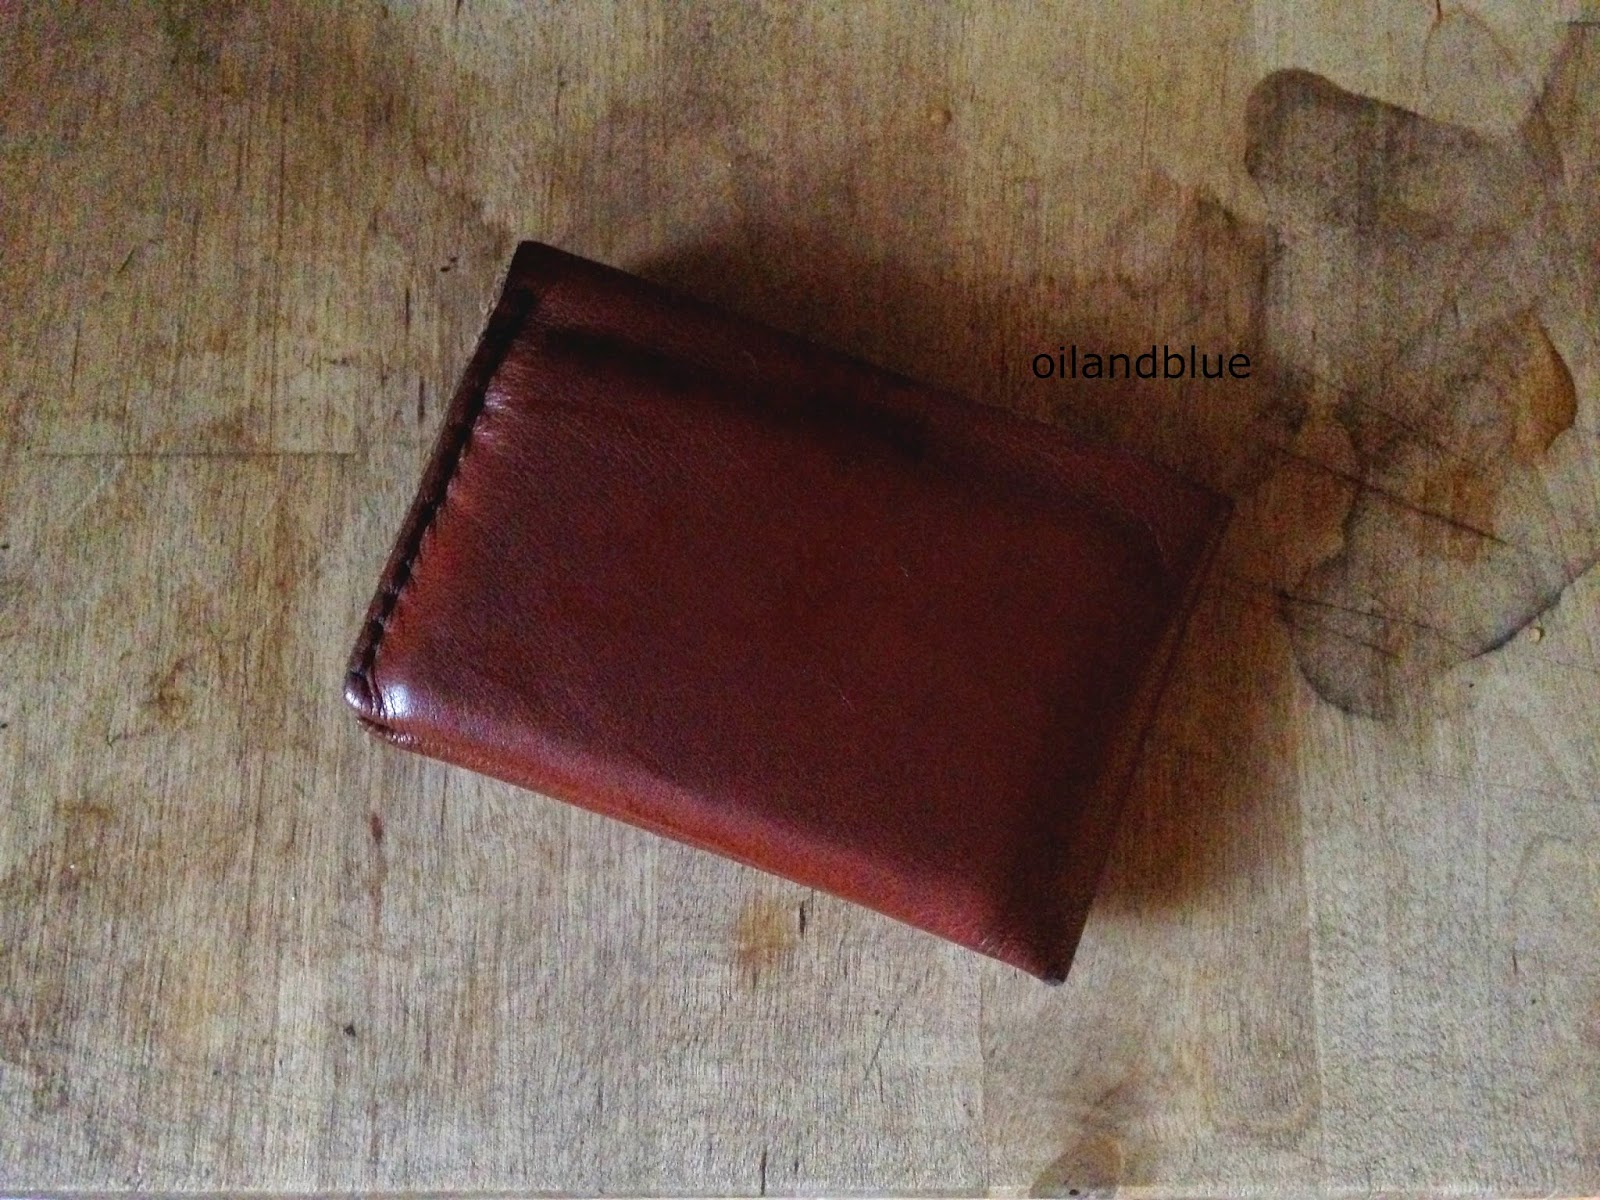 Oil And Blue DIY LEATHER WALLET PATTERN TEMPLATE - Leather wallet template